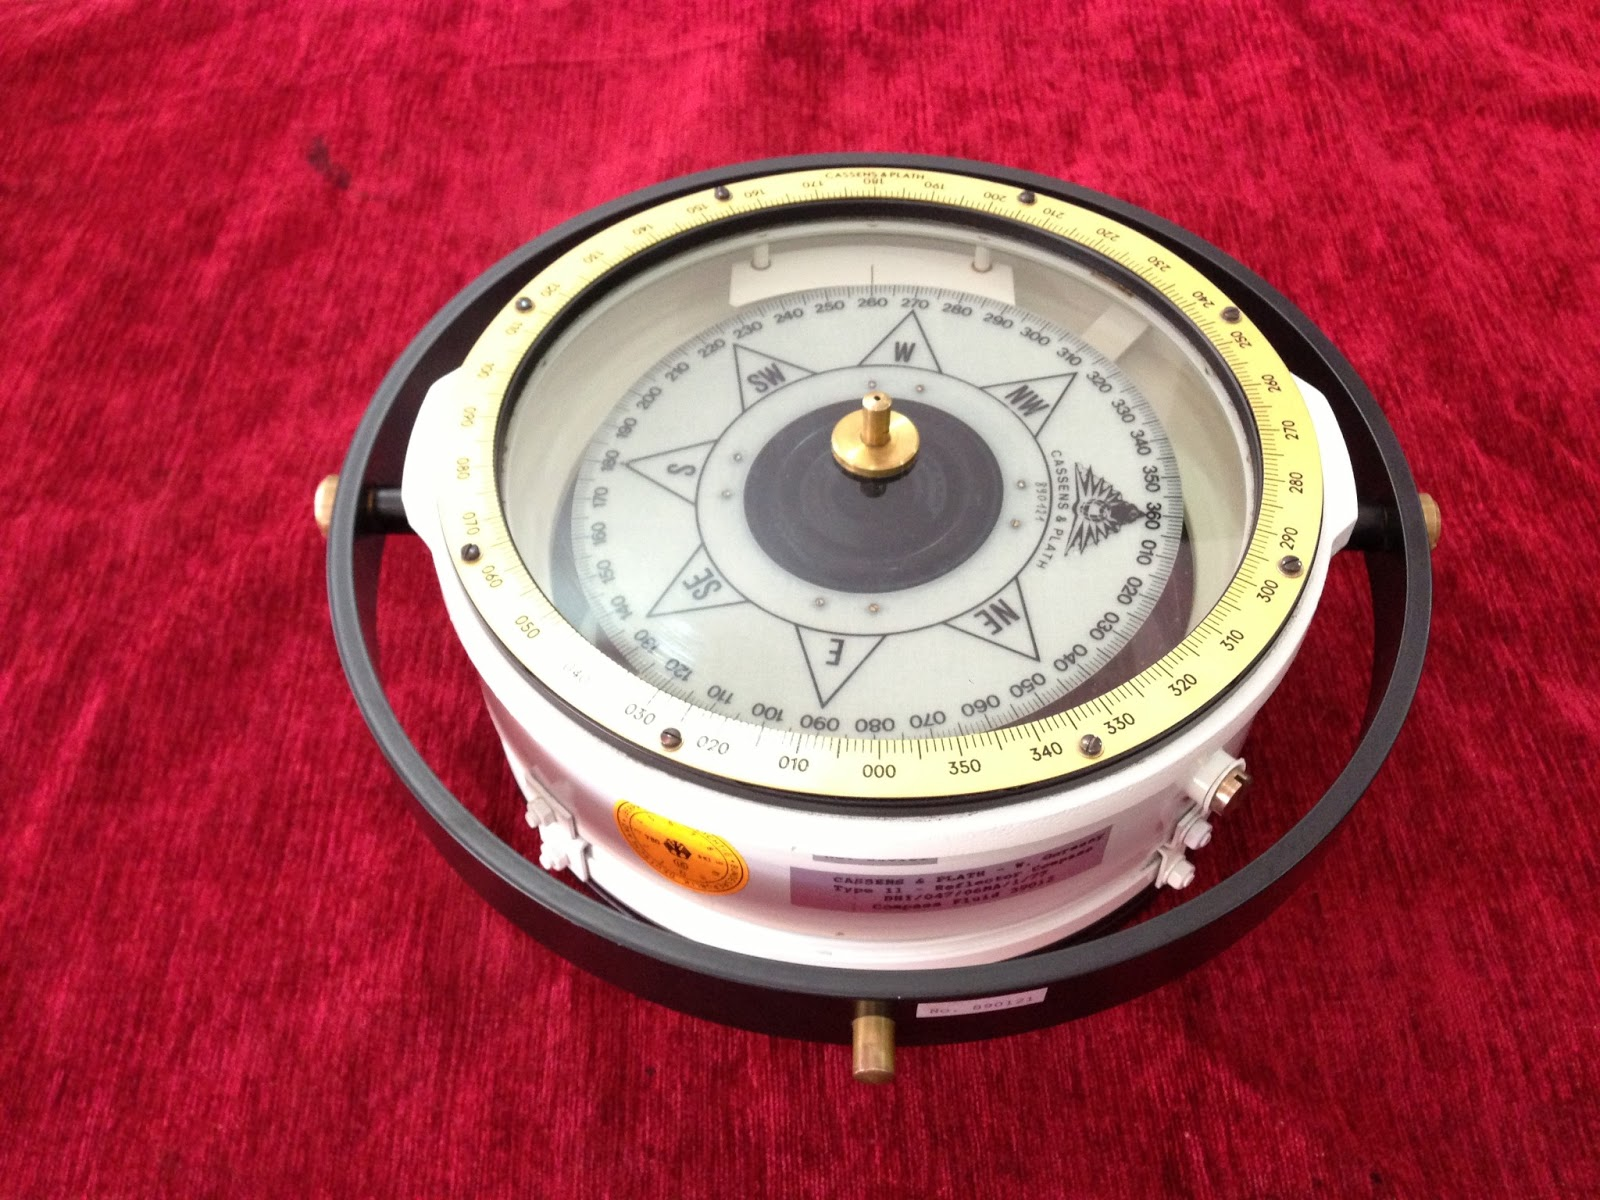 Plath Gmbh shayona electronics cassen plath gmbh type 11 compass made in w